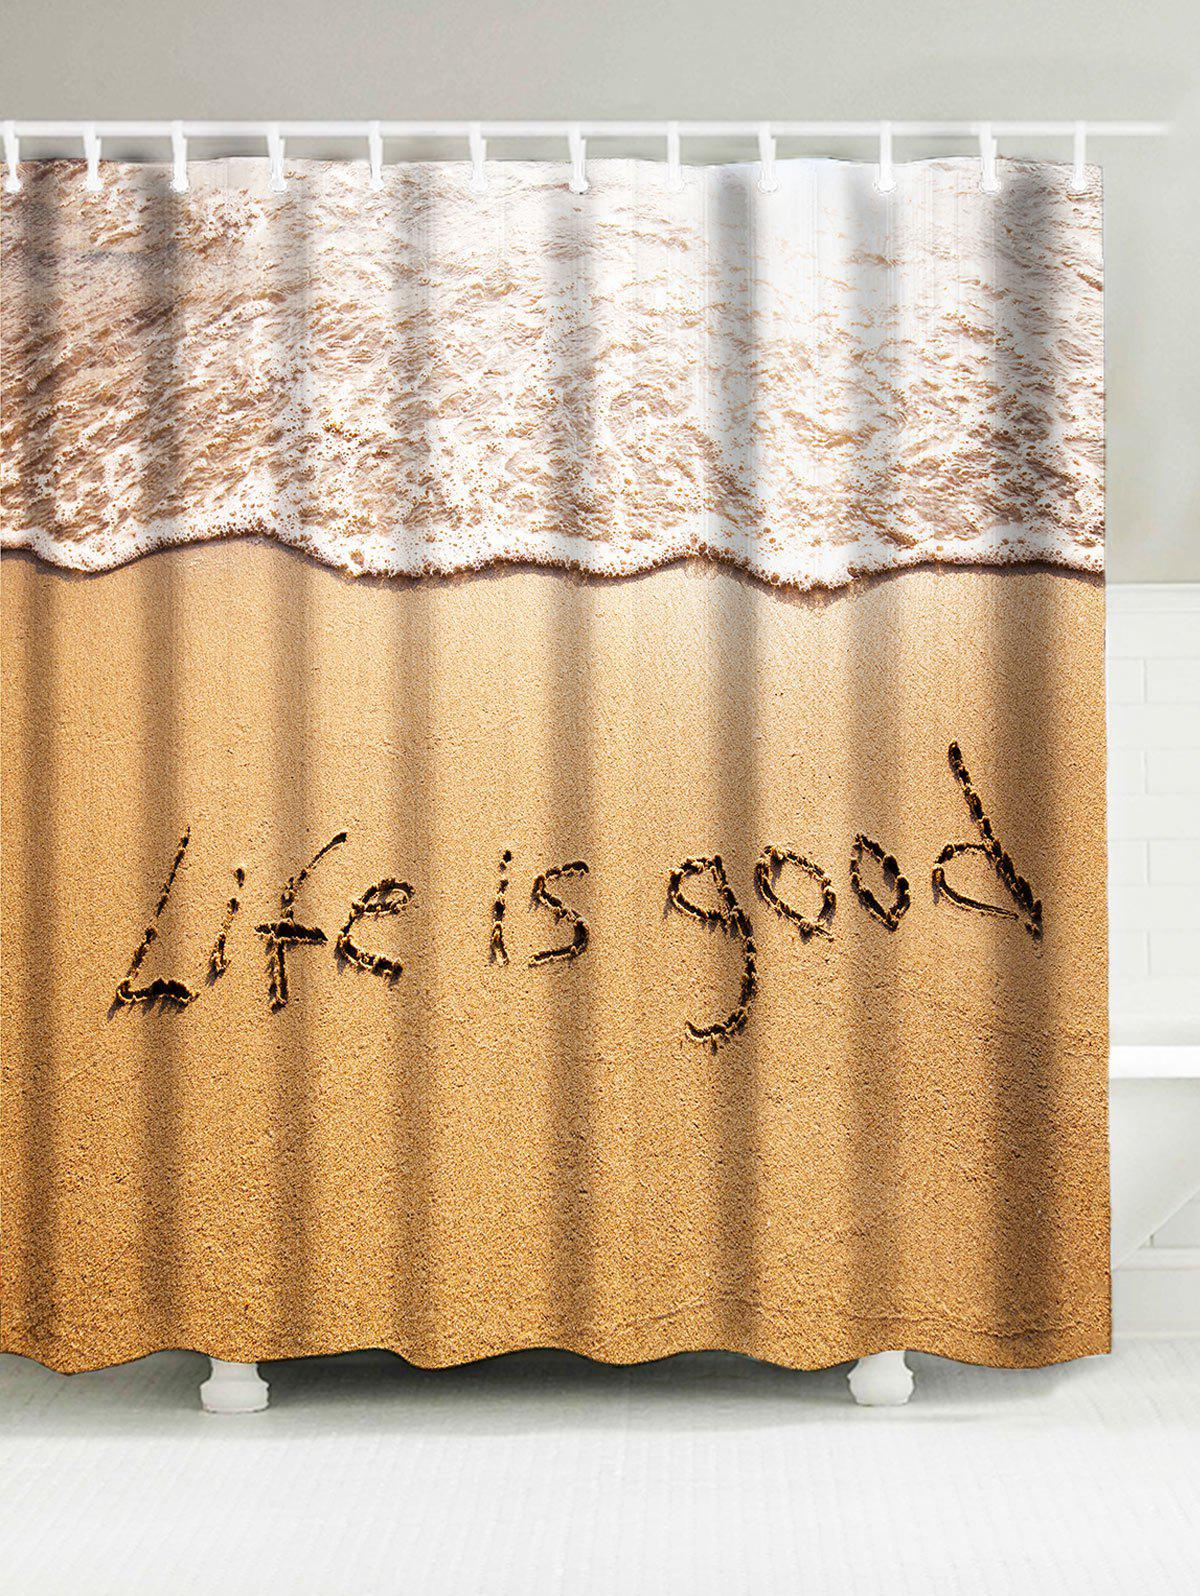 Beach Style Words Print Waterproof Shower Curtain Sand Yellow W Inch L Inch In Shower Curtains